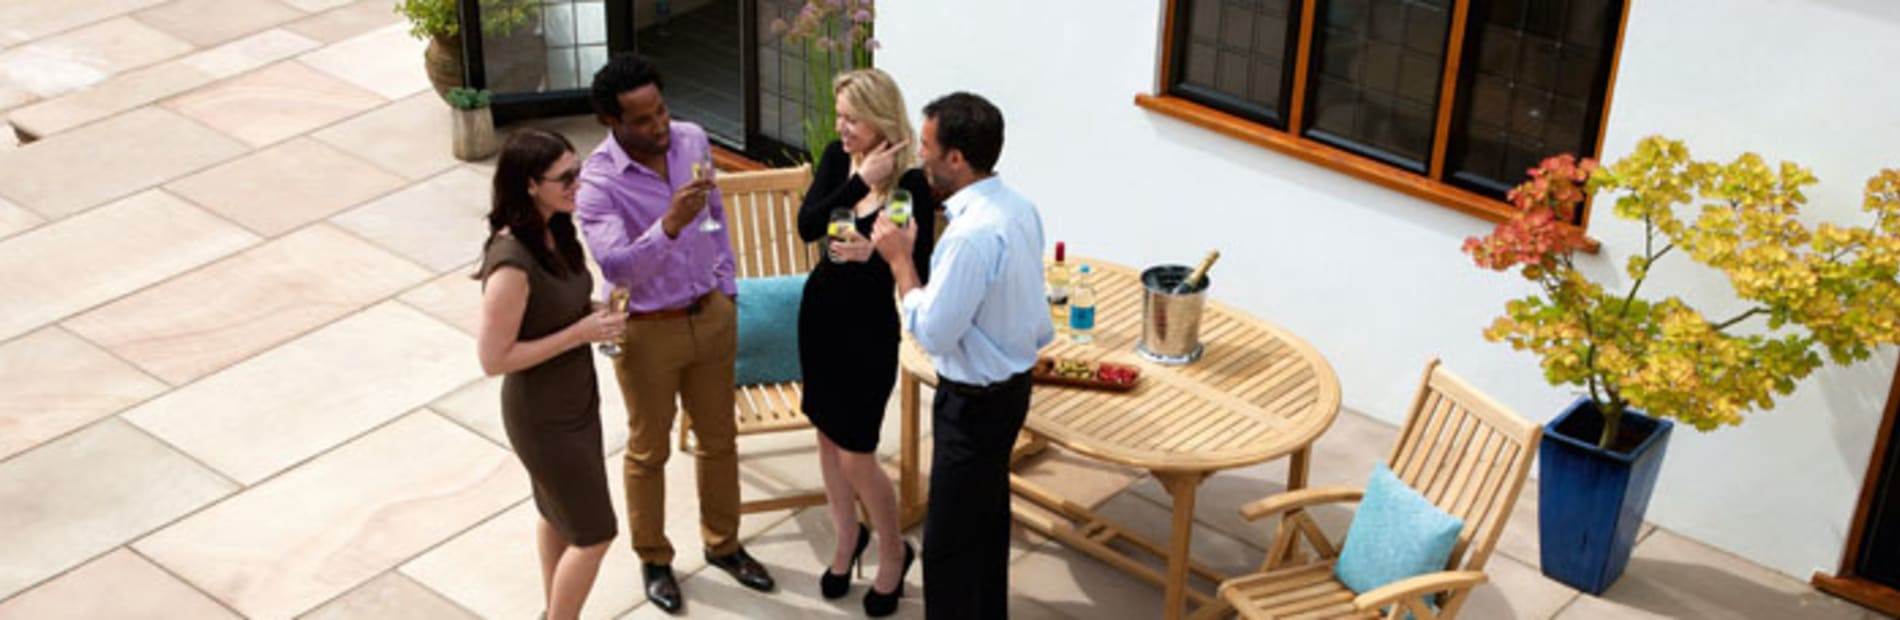 a group of friends talking in a patio area.